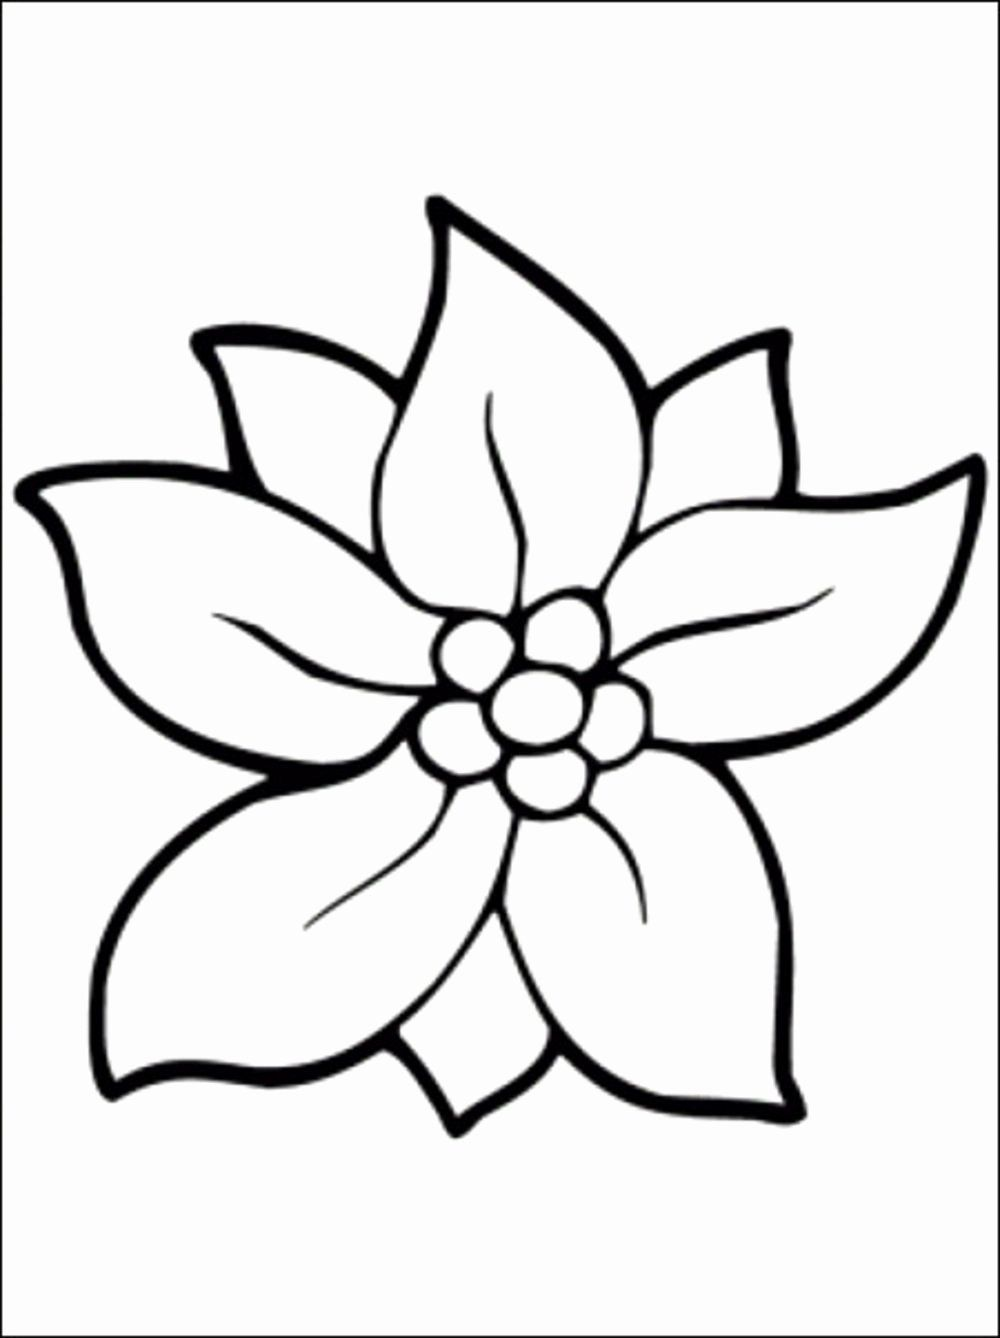 Bursting Blossoms Flower Coloring Page Printable Flower Coloring Pages Flower Coloring Pages Flower Coloring Sheets